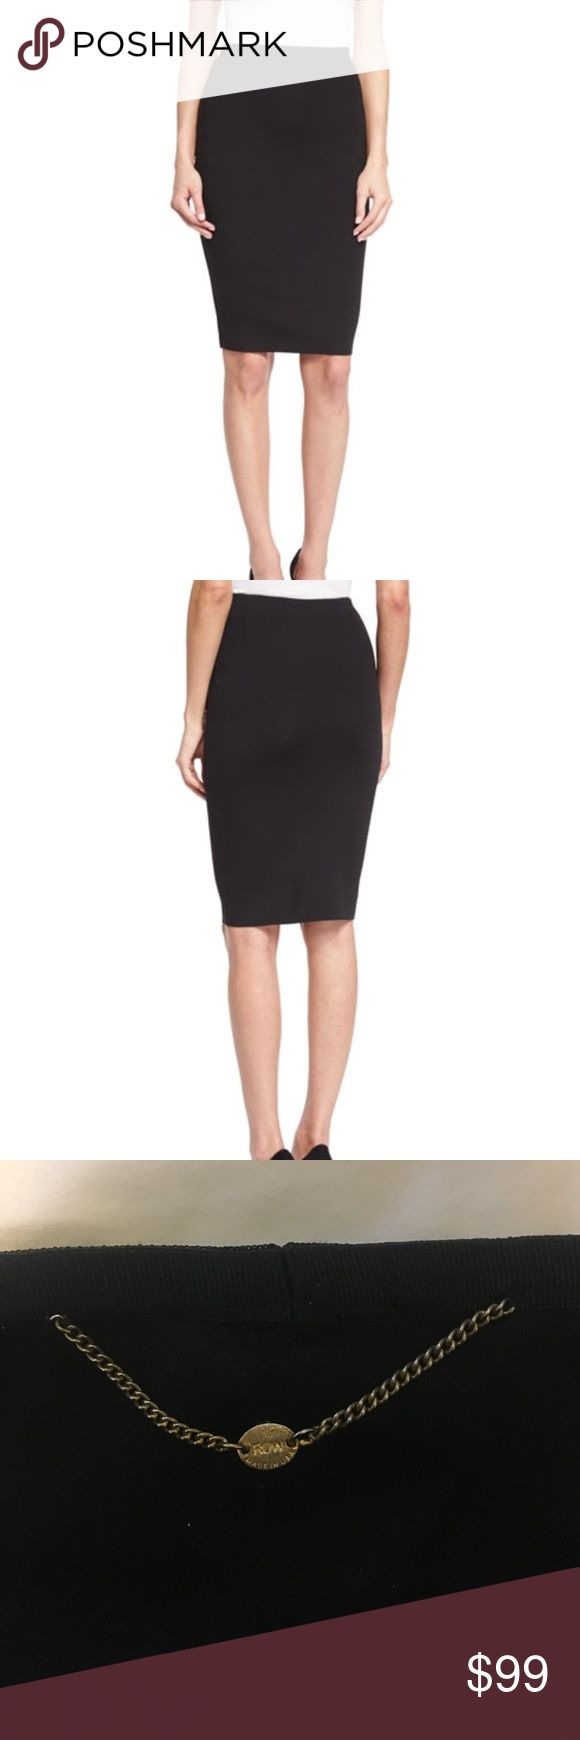 The Row Black Pencil Skirt Gorgeous black pencil skirt. Slip on and be a BOSS The Row Skirts Pencil